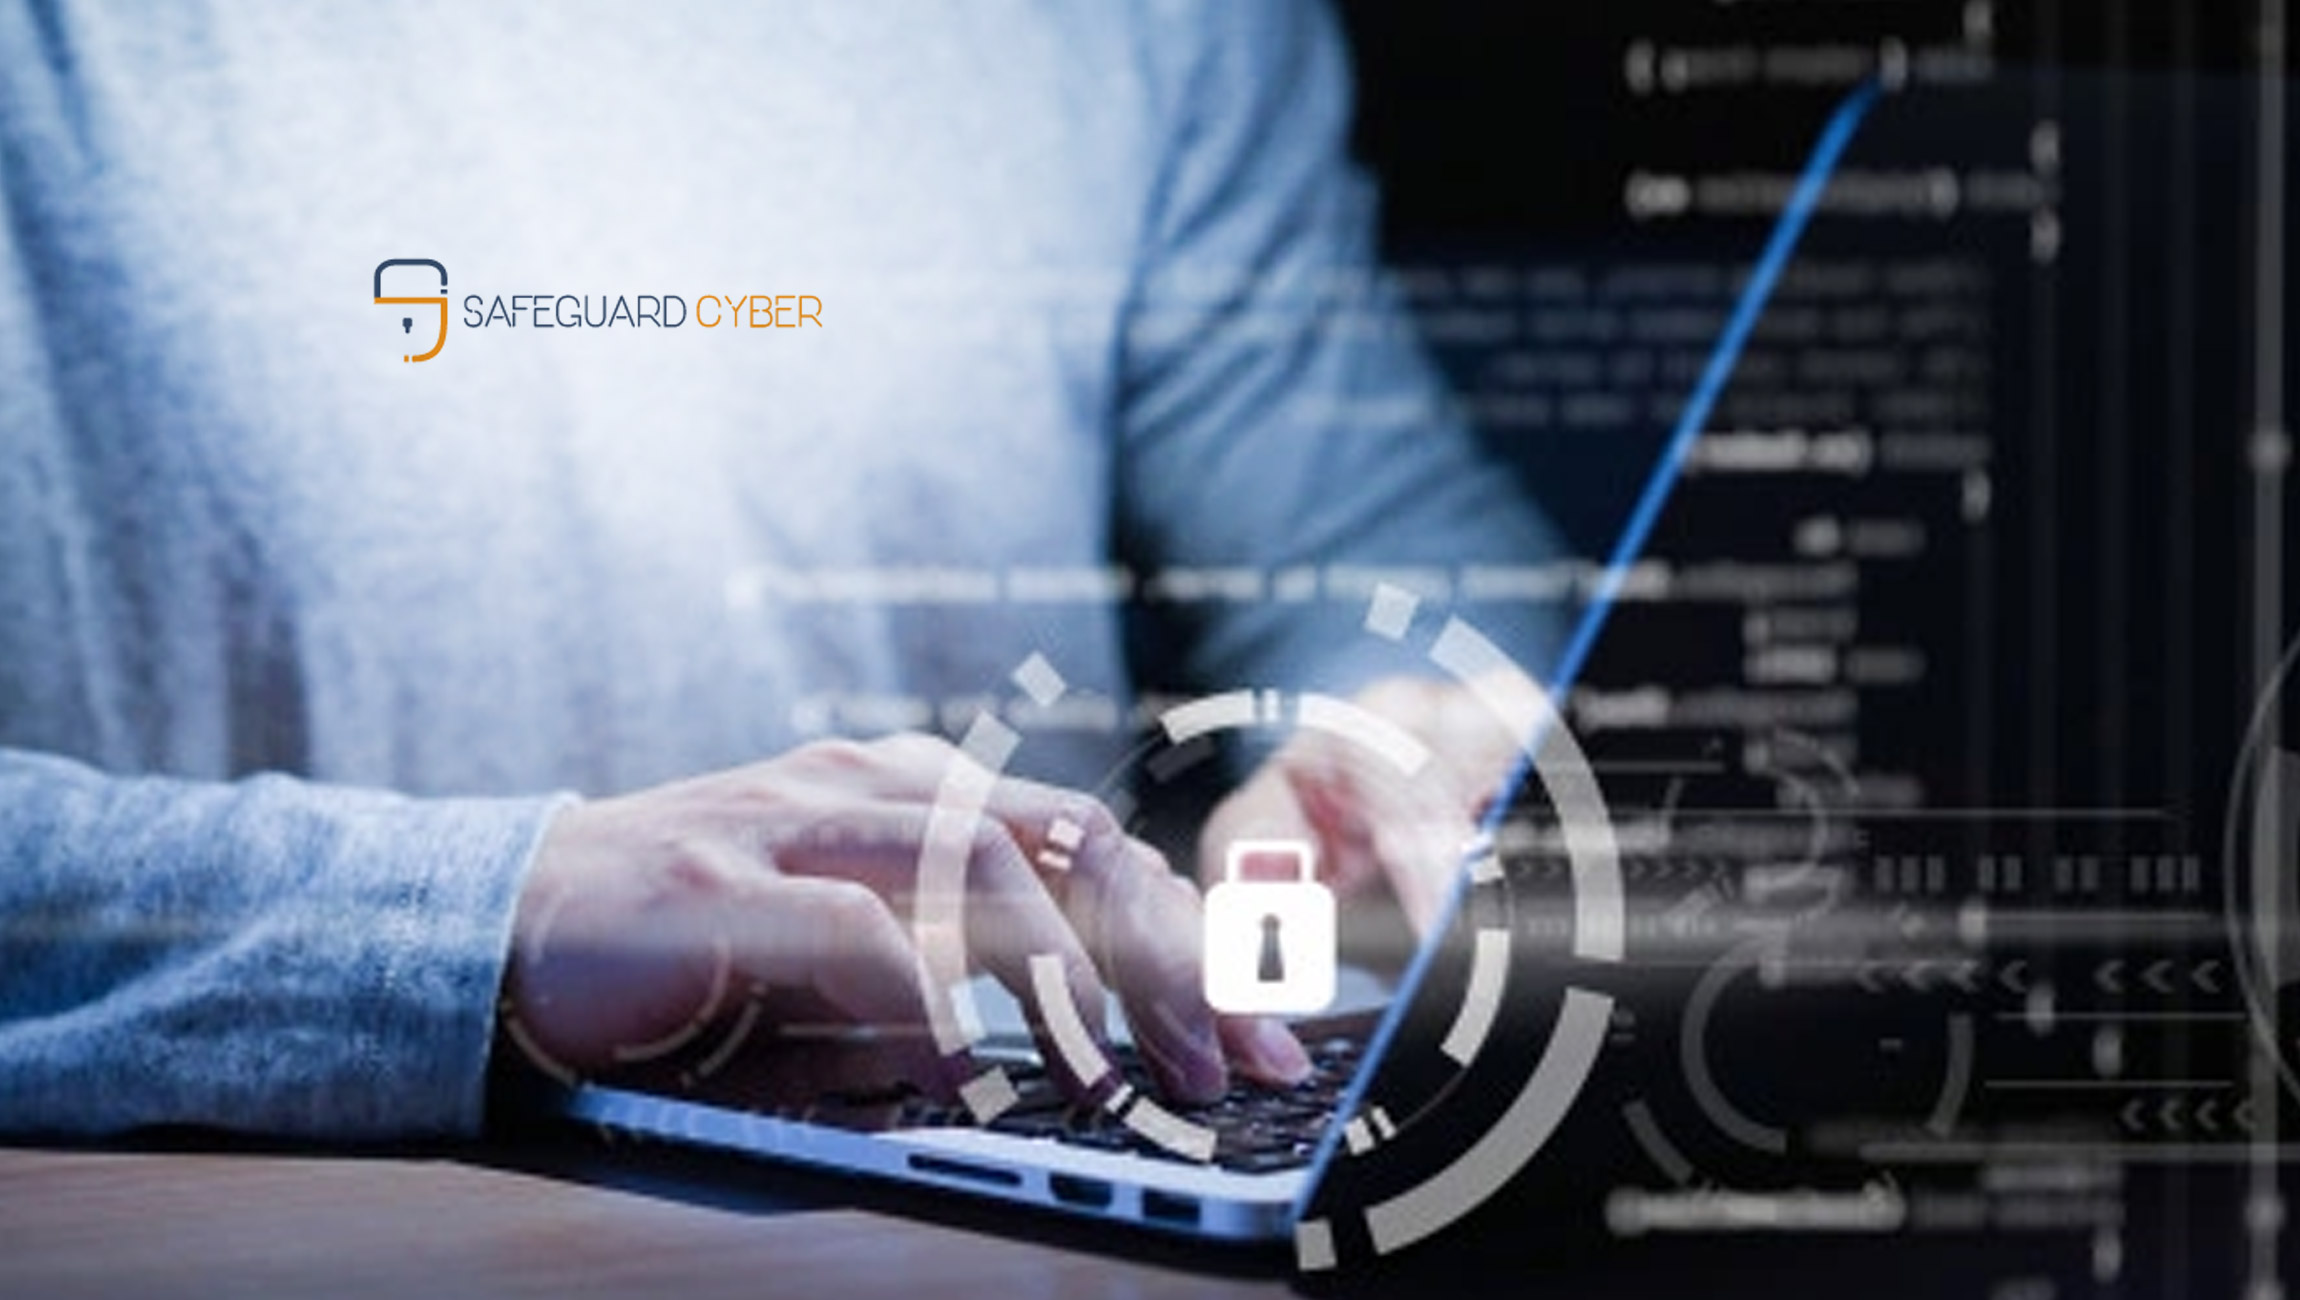 Executives At Elevated Risk For Cyber Threats On Social Media